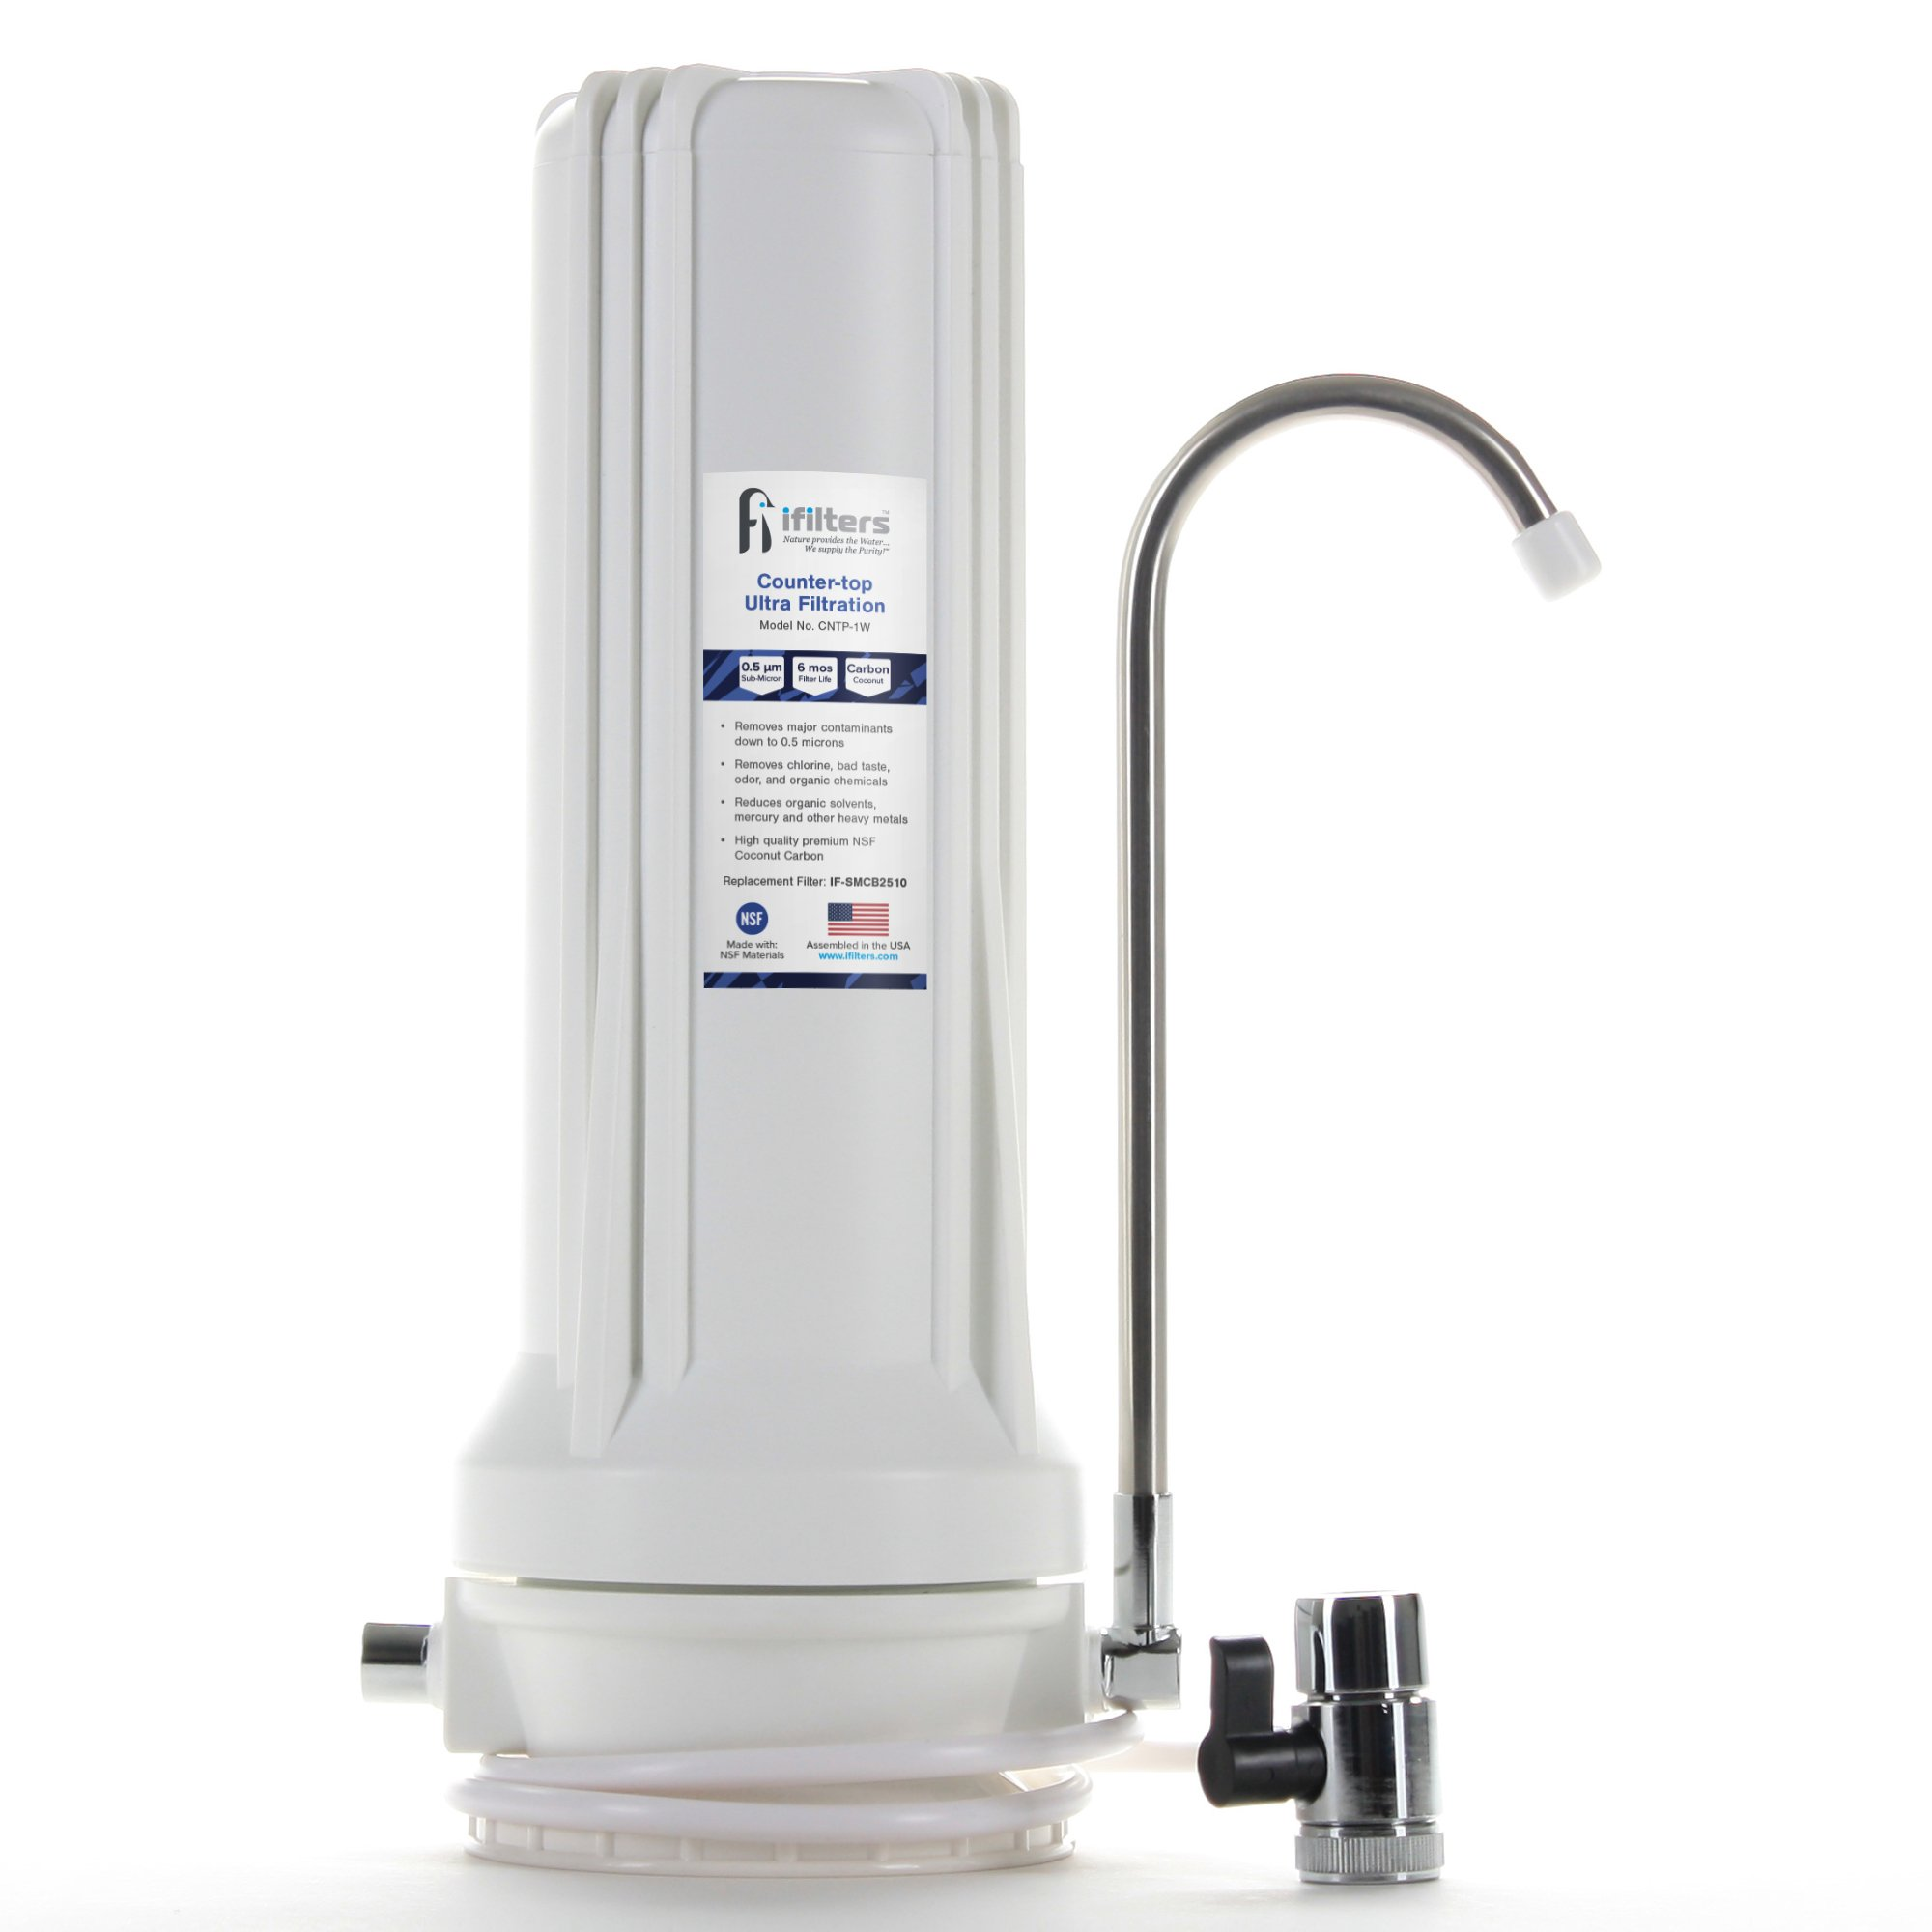 Countertop Ultra Drinking Water Filter for VOCs Cysts Pesticides Herbicides Chlorine Taste & Odor - White by iFilters